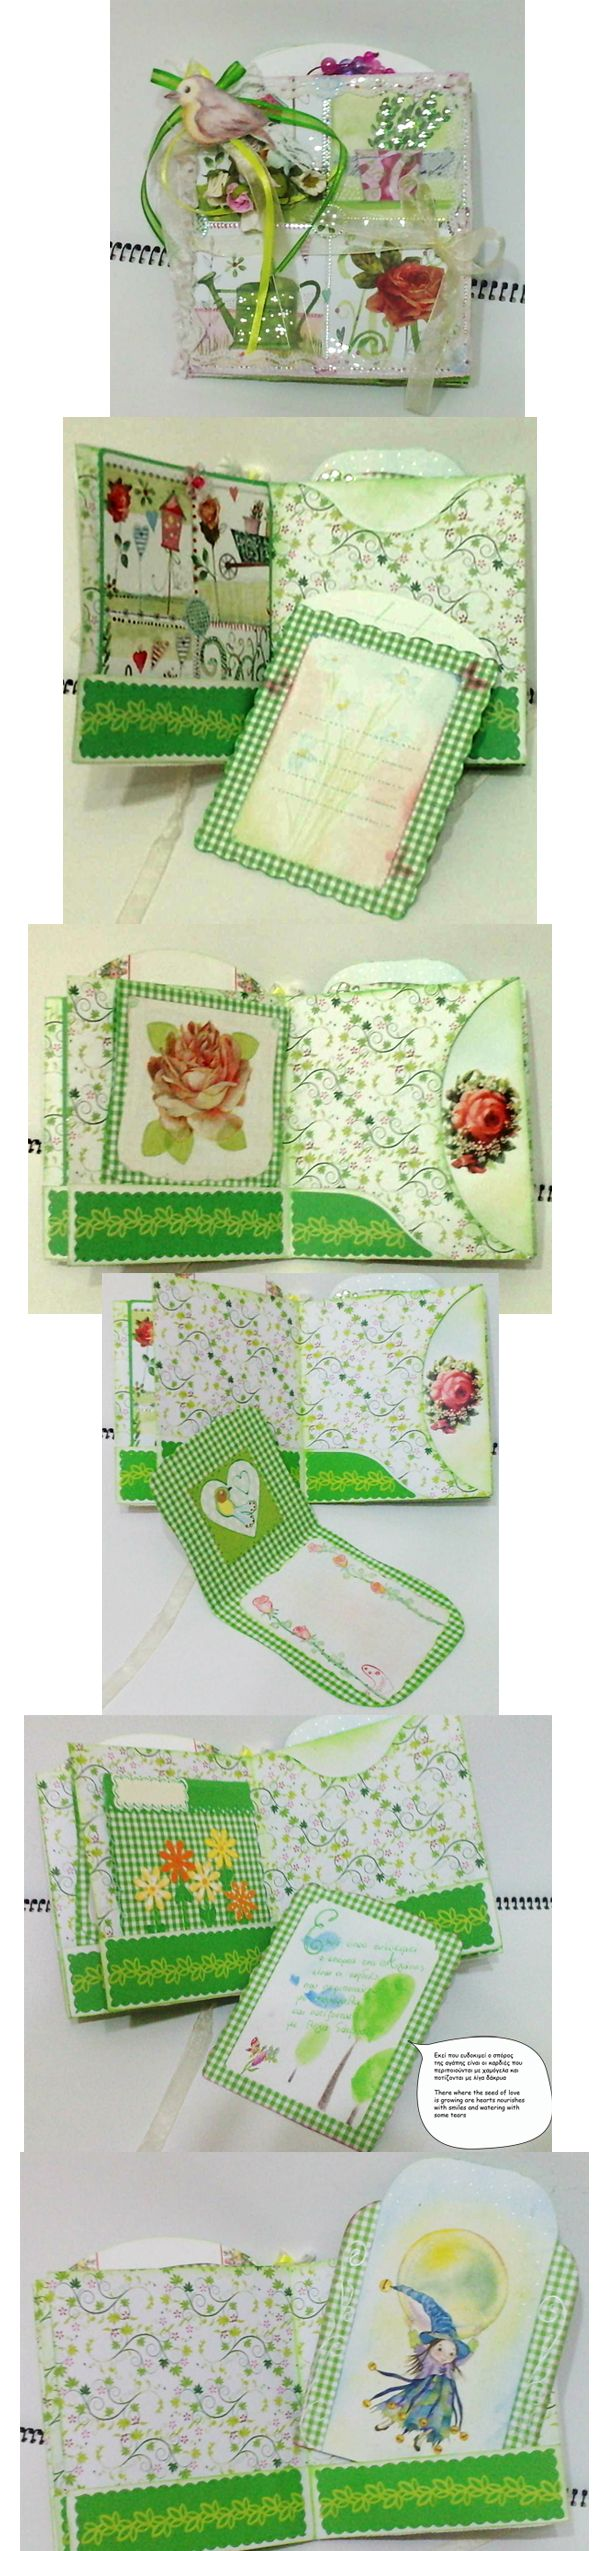 "my green mini album the card says ""There where the seed of love is growing are hearts nourishes with smiles and watering with some tears'"